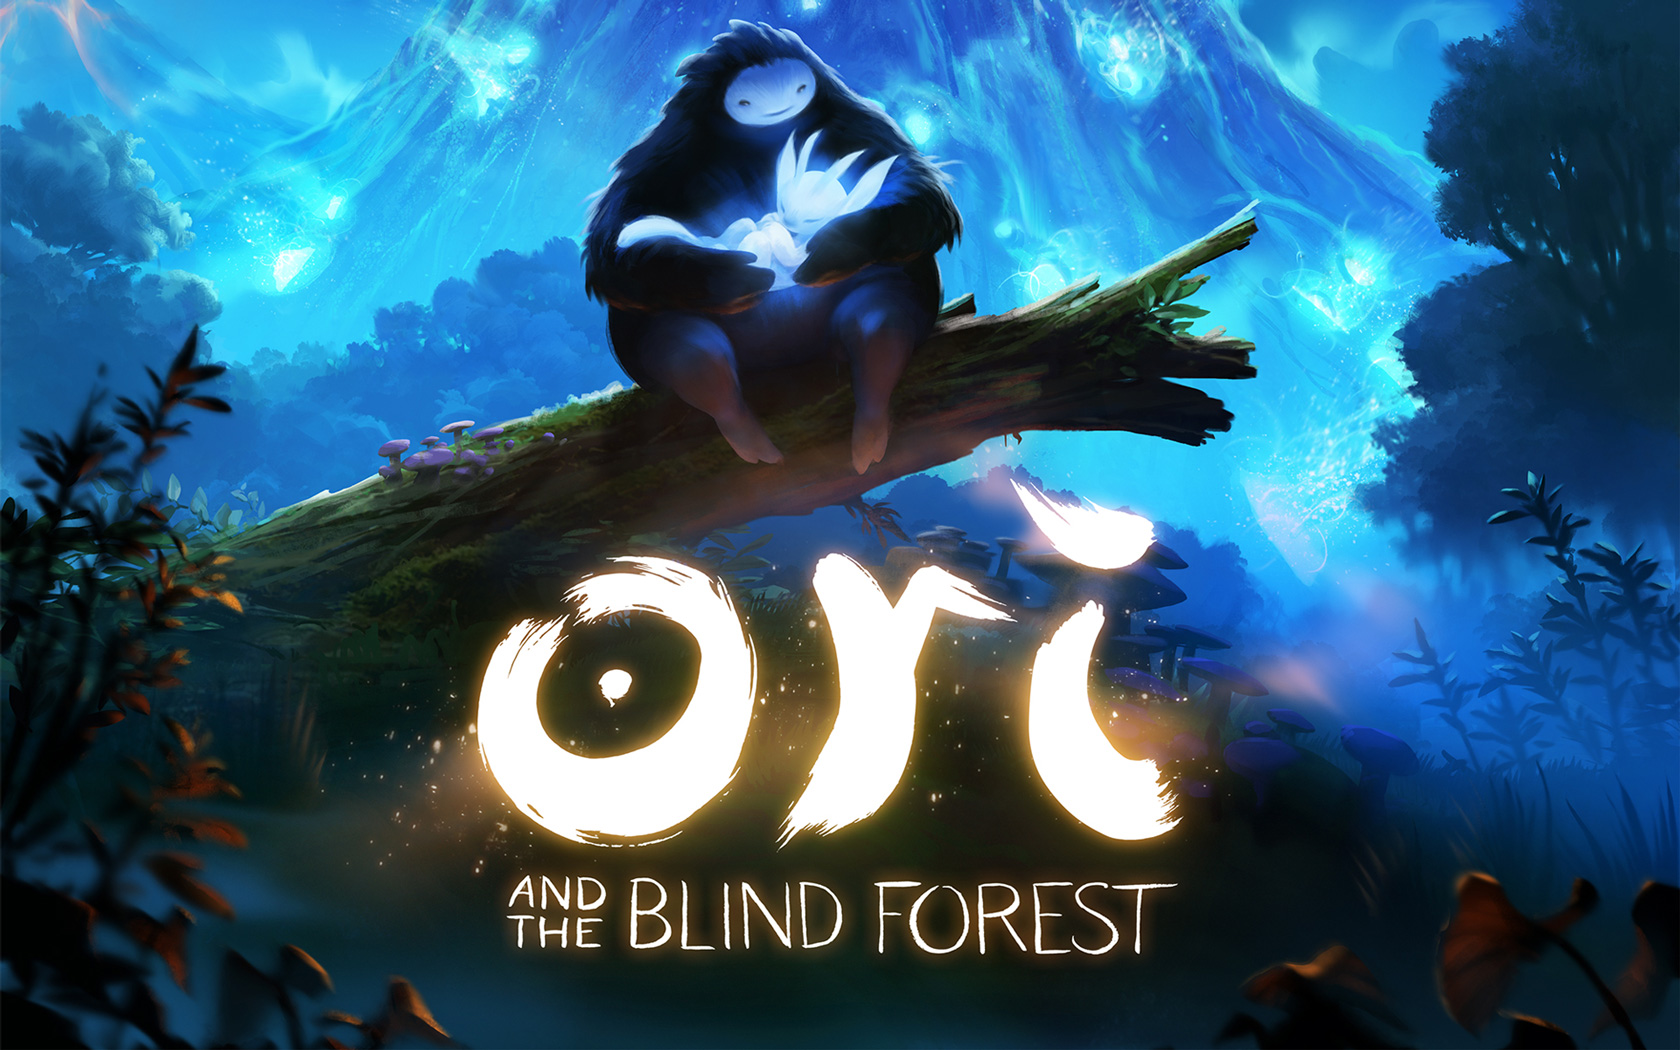 Ori And The Blind Forest Wallpaper in 1680x1050